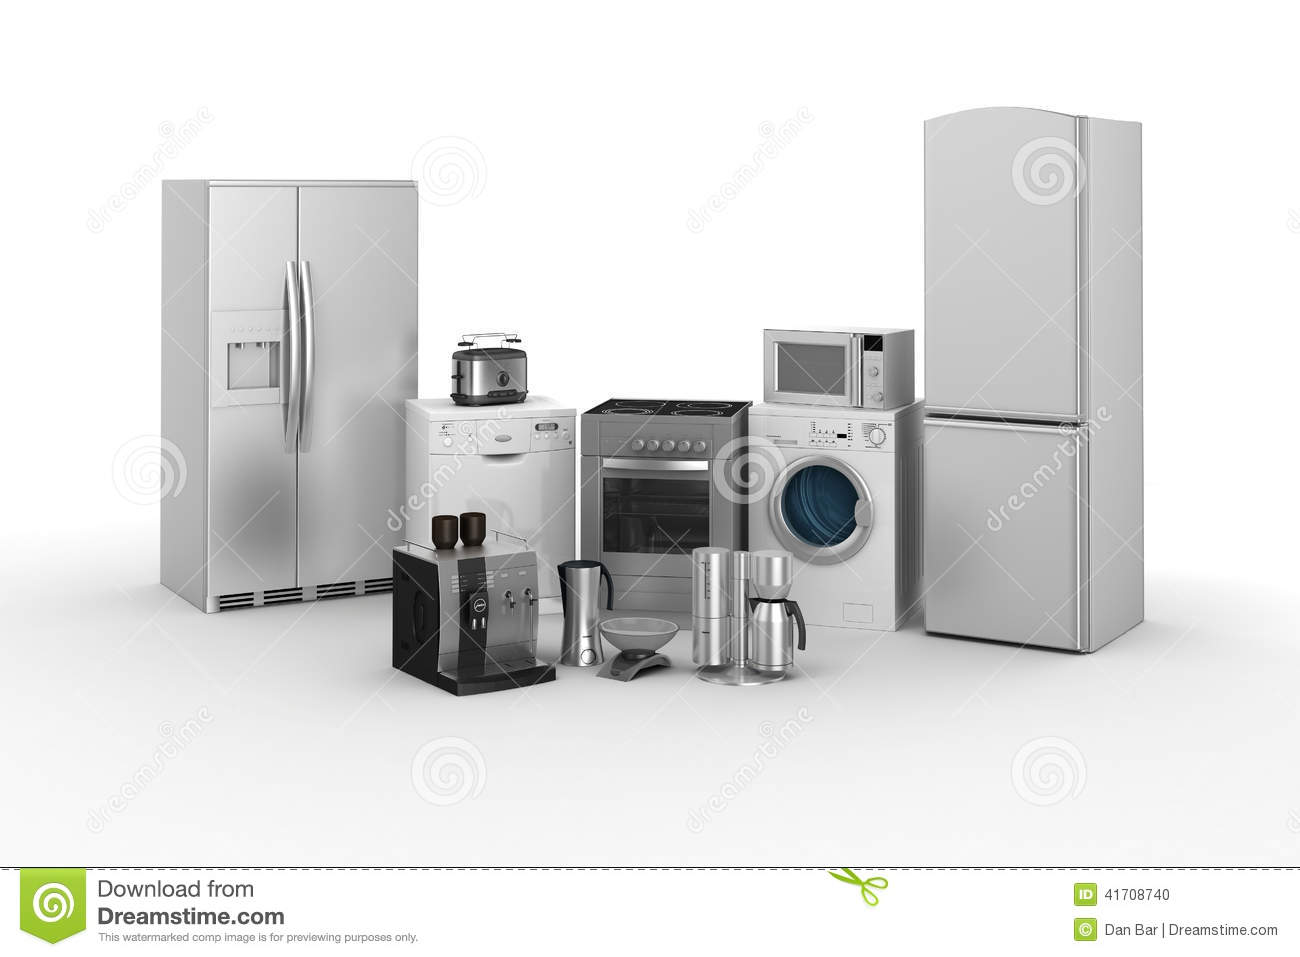 3d render of household appliances stock illustration illustration of appliances dish 41708740. Black Bedroom Furniture Sets. Home Design Ideas